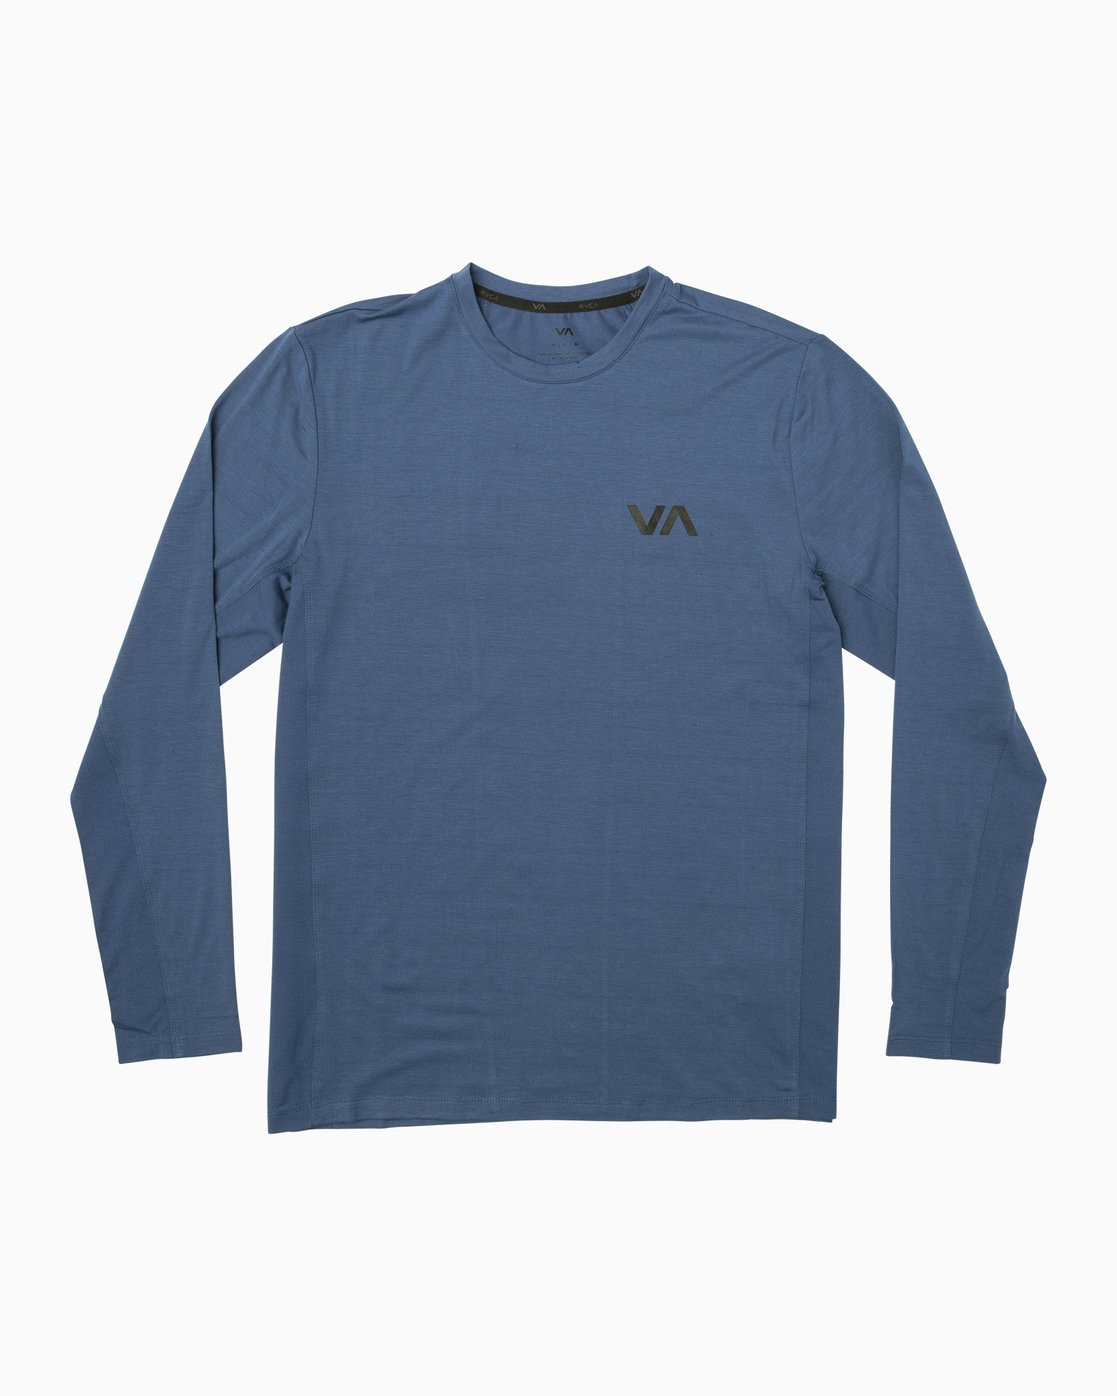 0 VA Vent Long Sleeve Top Blue V903QRVL RVCA